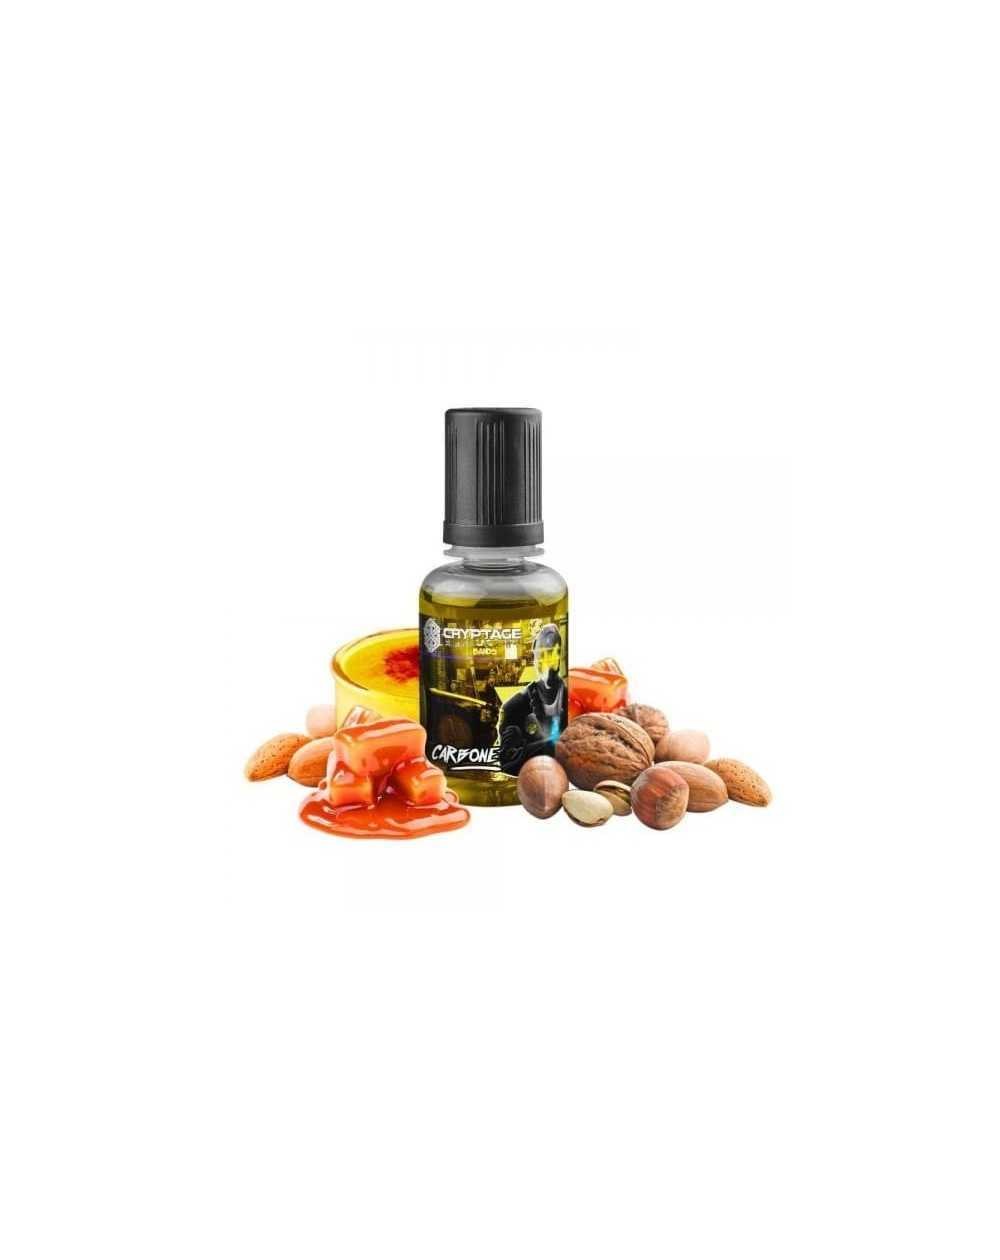 Concentrate aroma Carbone 30ml - Cryptage of Avap-1